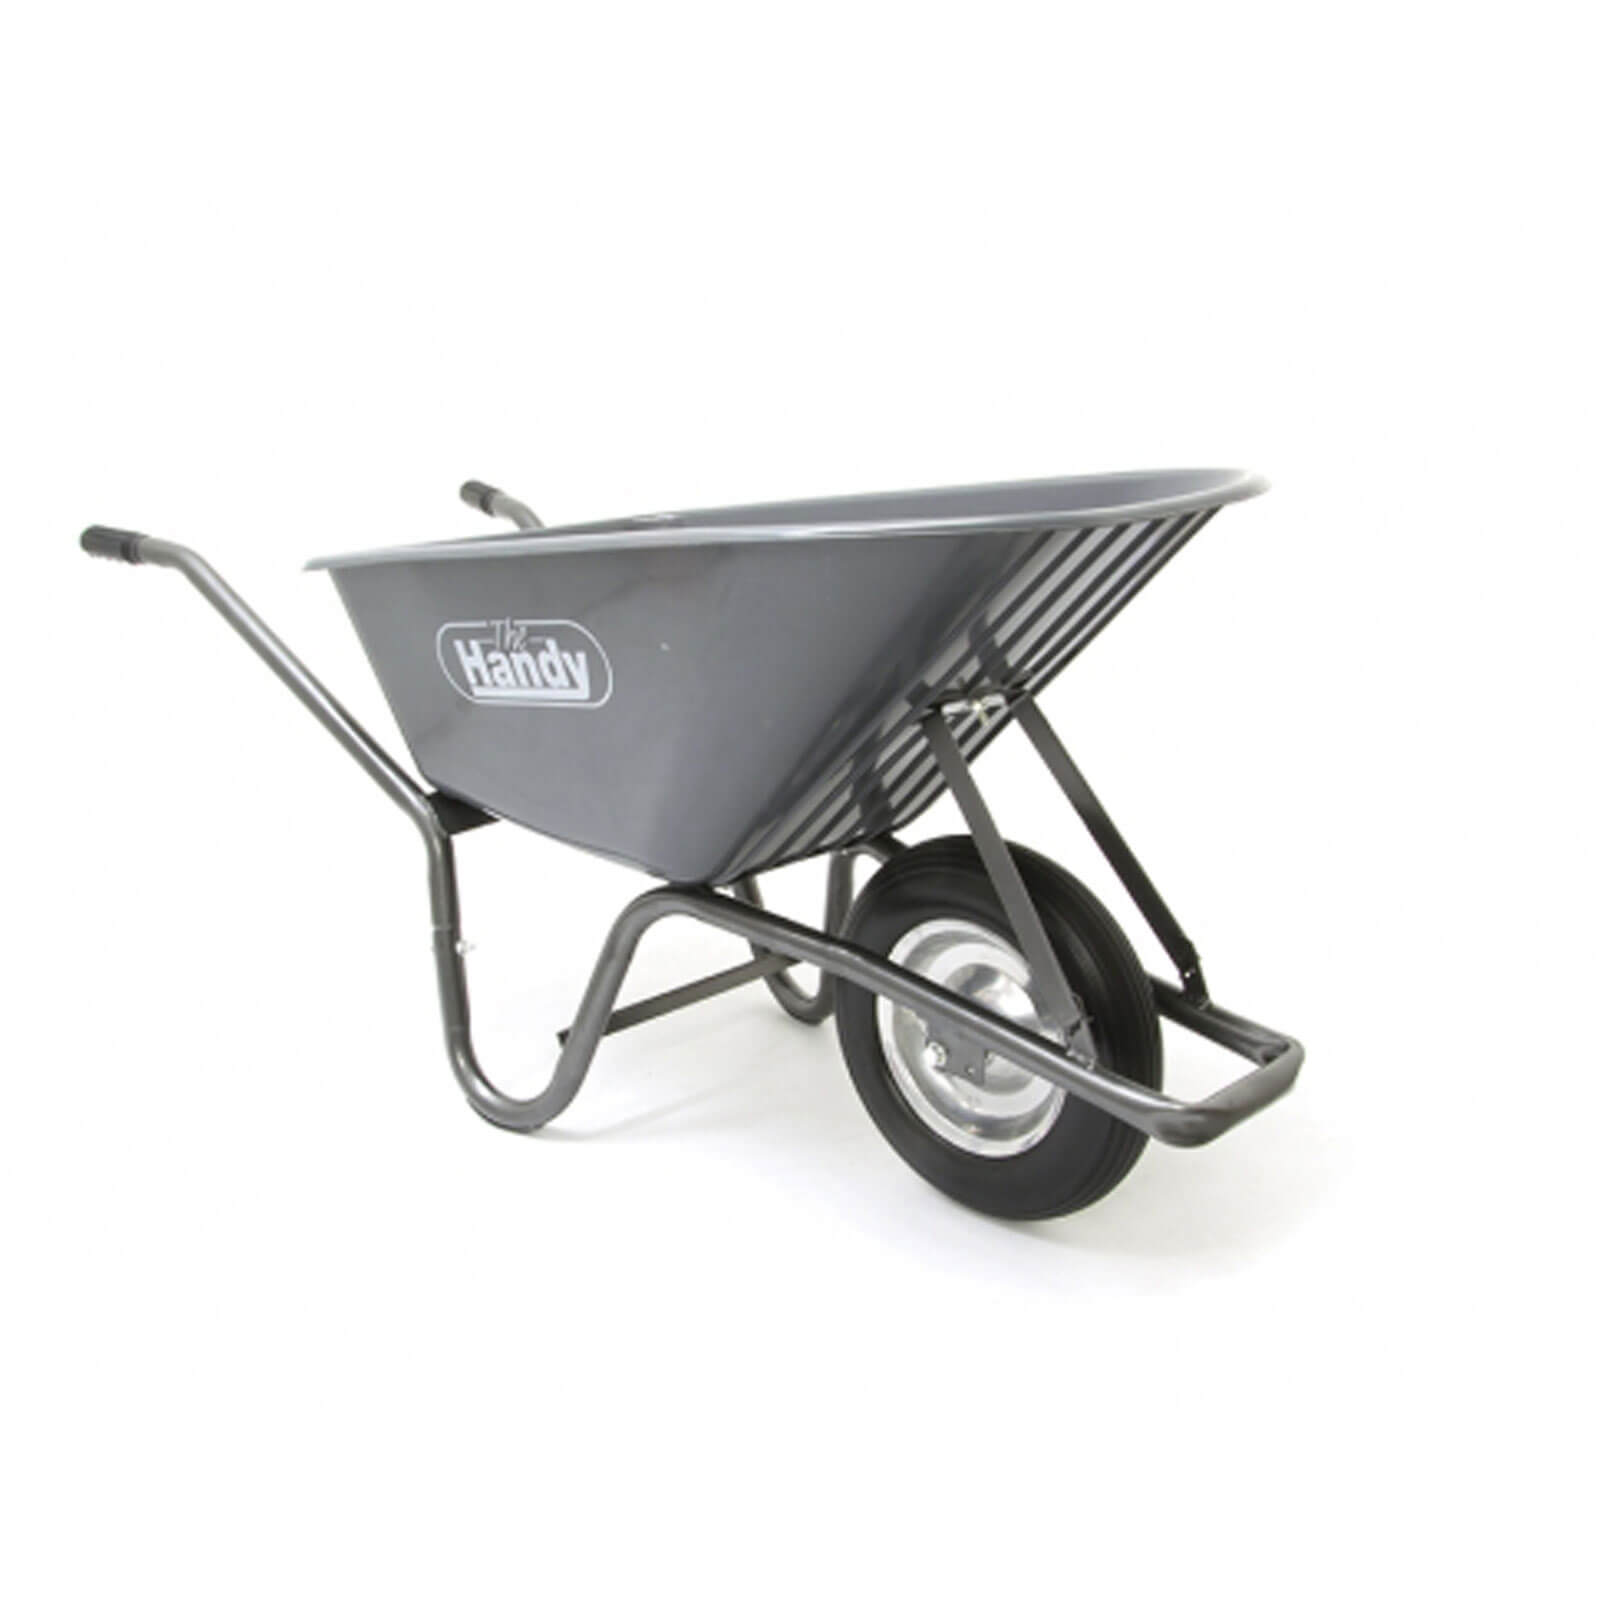 Handy WB90 Wheel Barrow 90L with Punctureless Wheels